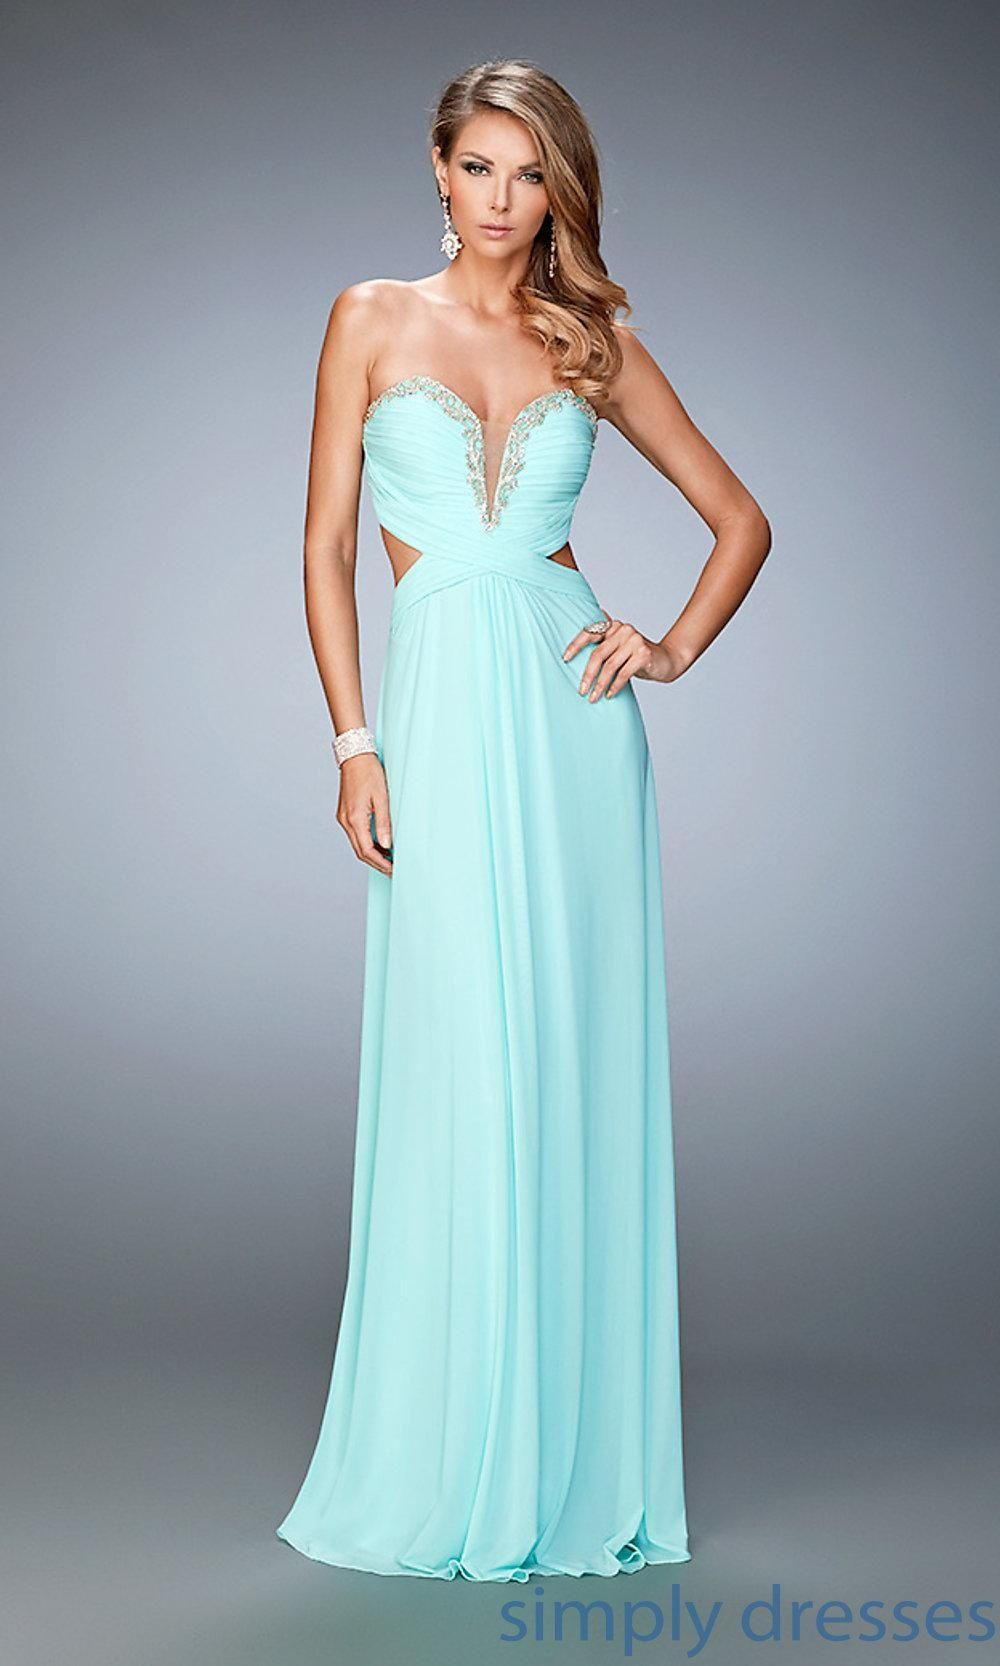 Contemporary Party Dresses For Hire Frieze - All Wedding Dresses ...